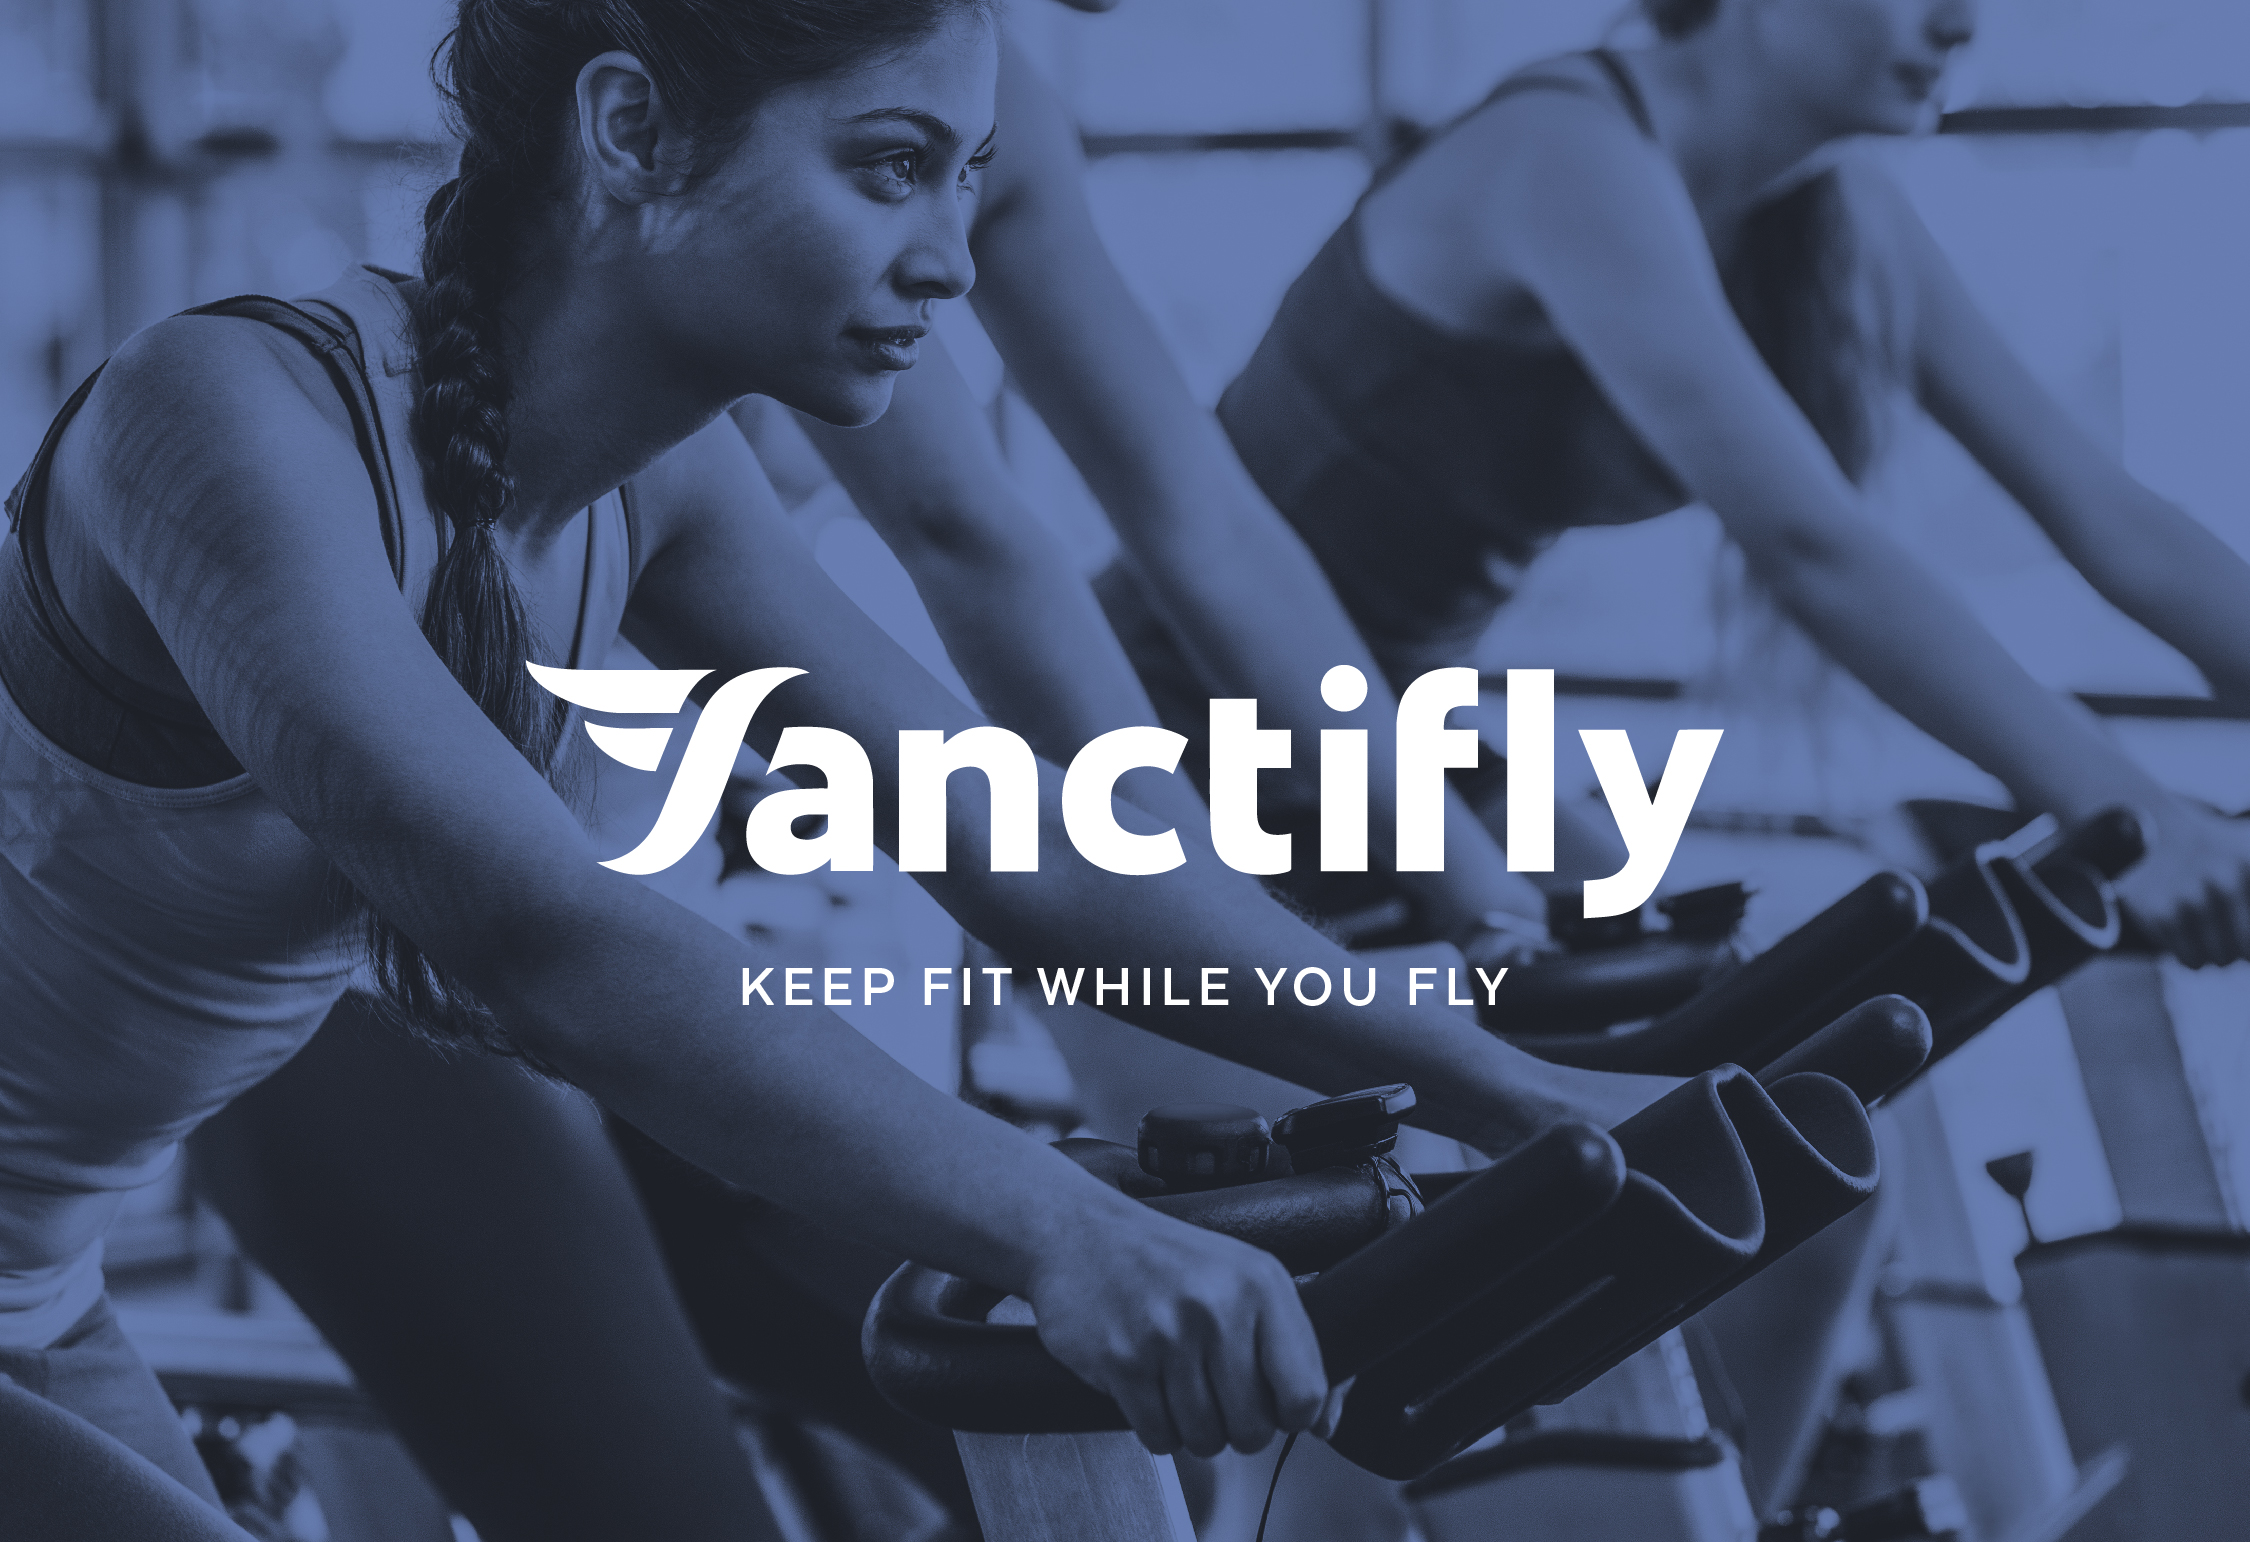 Sanctifly Travel App: Keep Fit On The Road